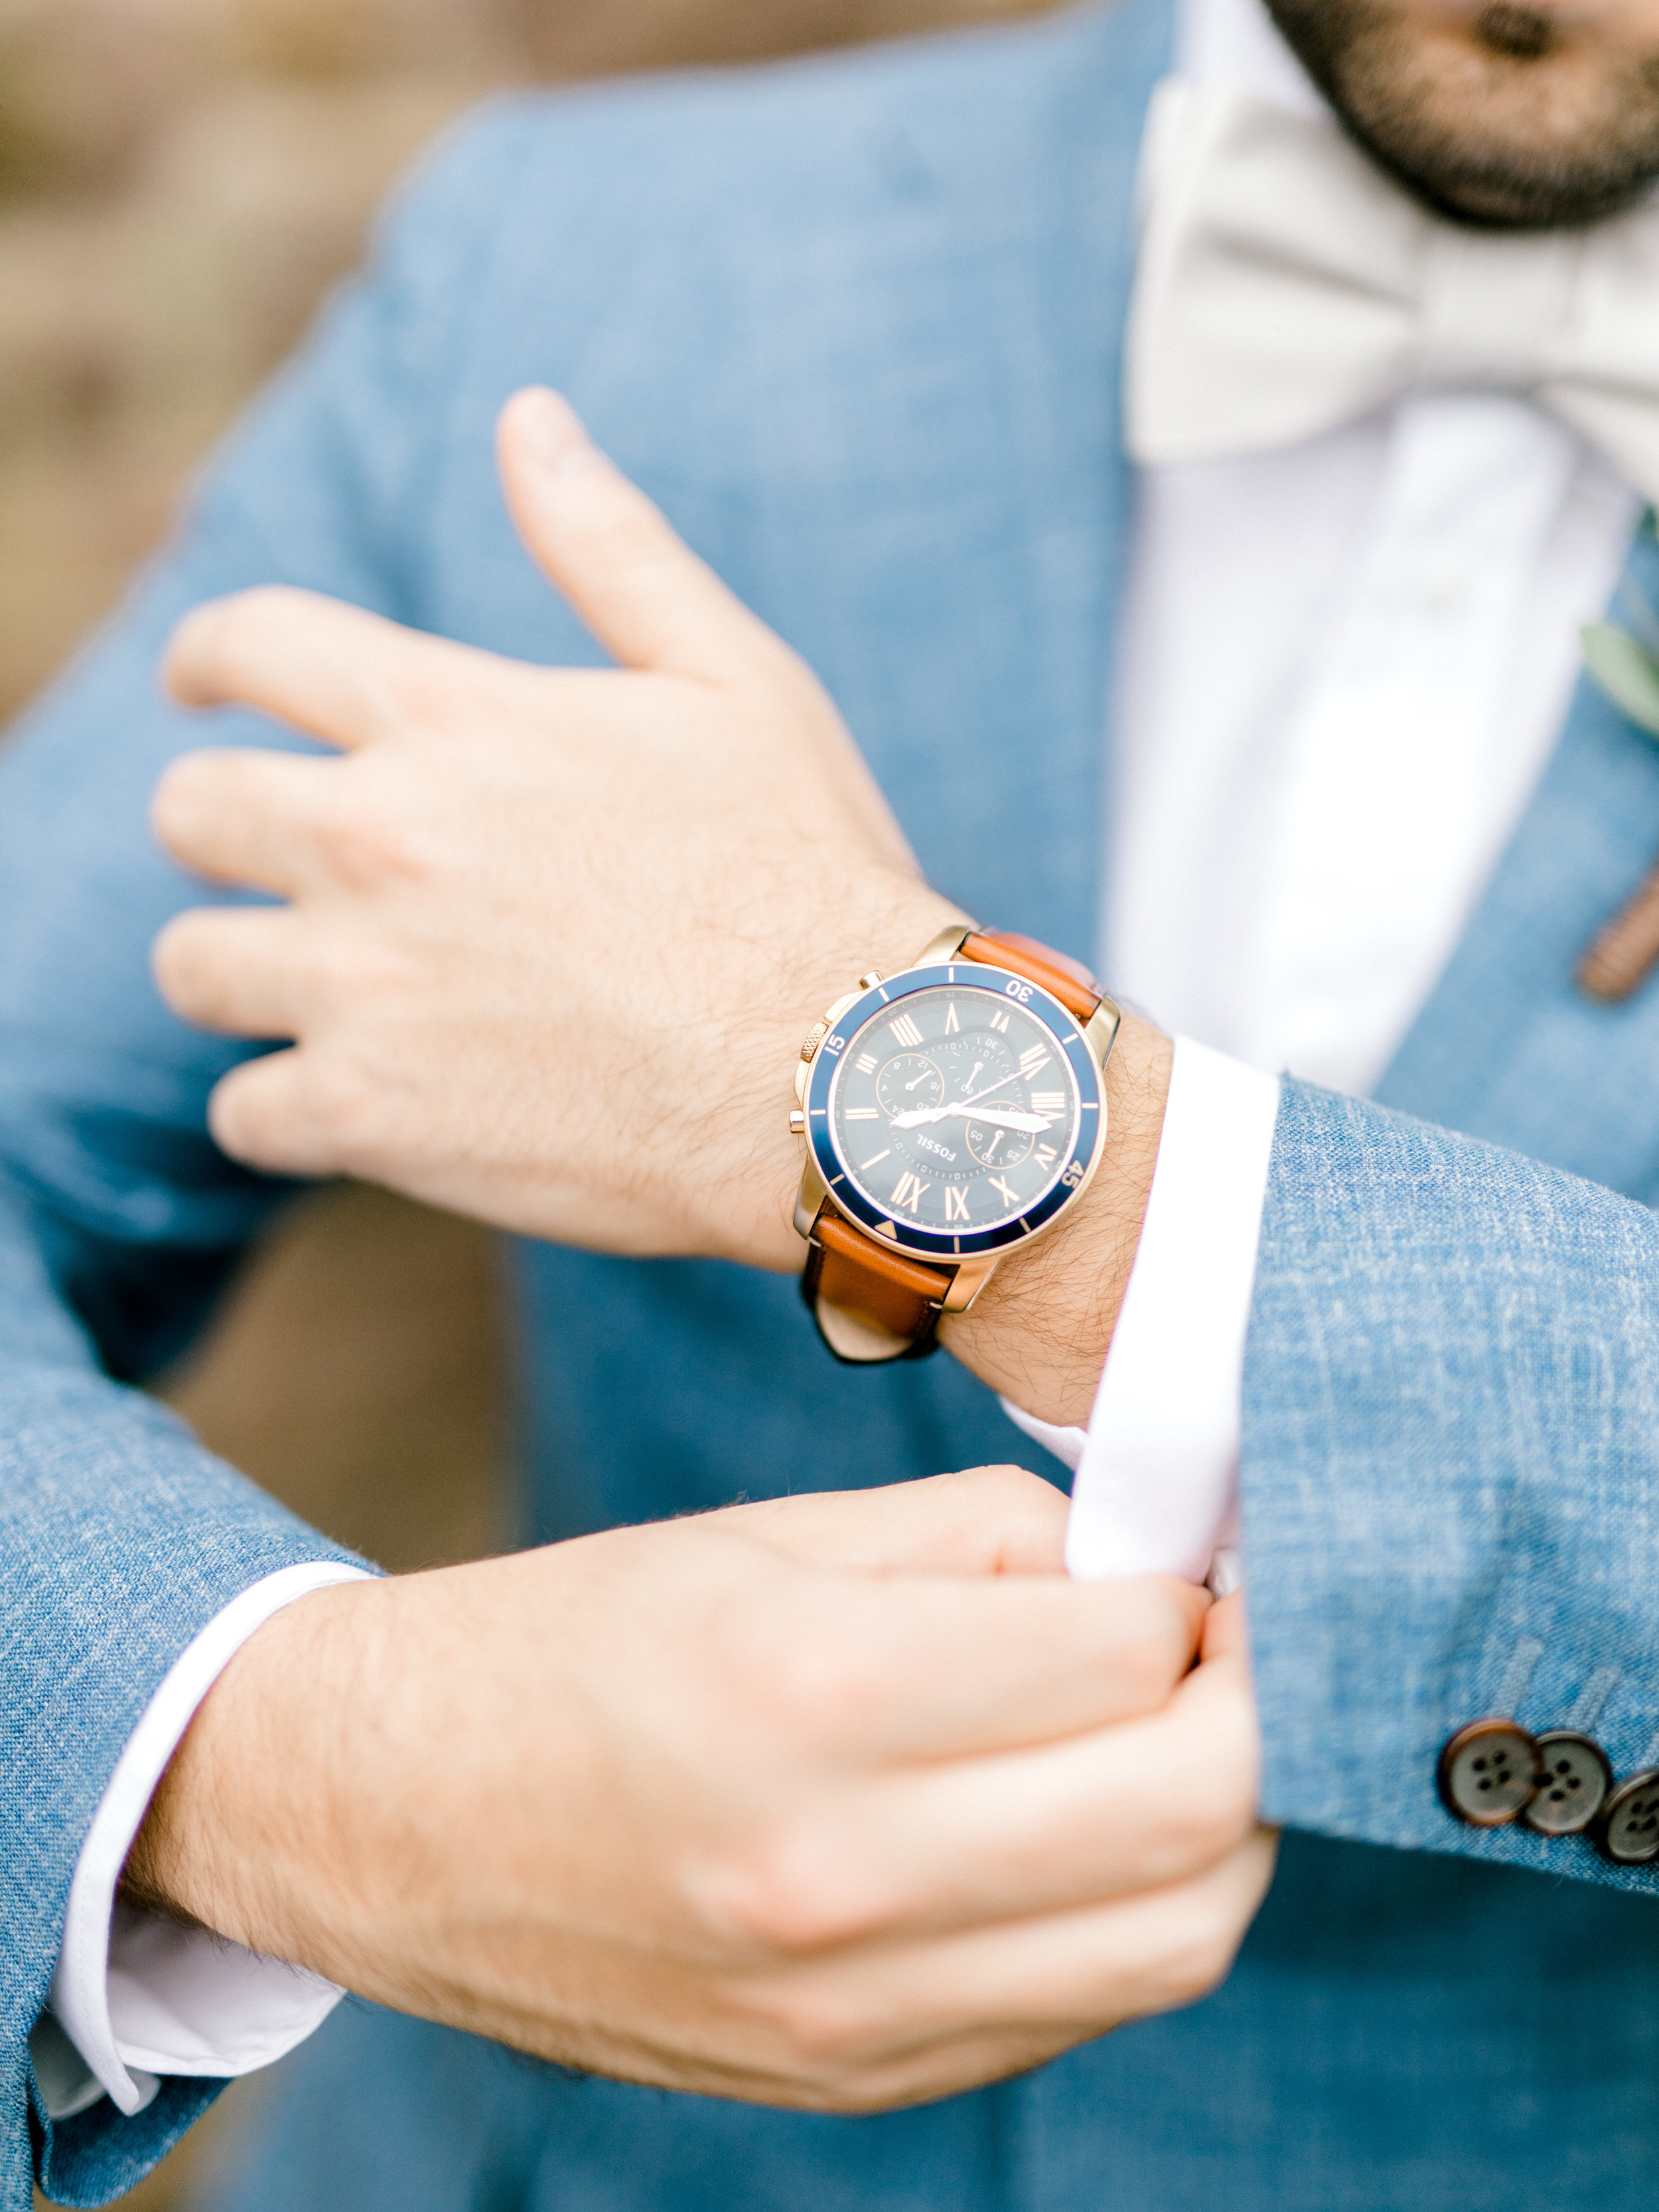 I'm loving this stylish watch with leather strap mixed with Mike's light blue suit for his bright boho chic Tyler Gardens wedding in Bucks County